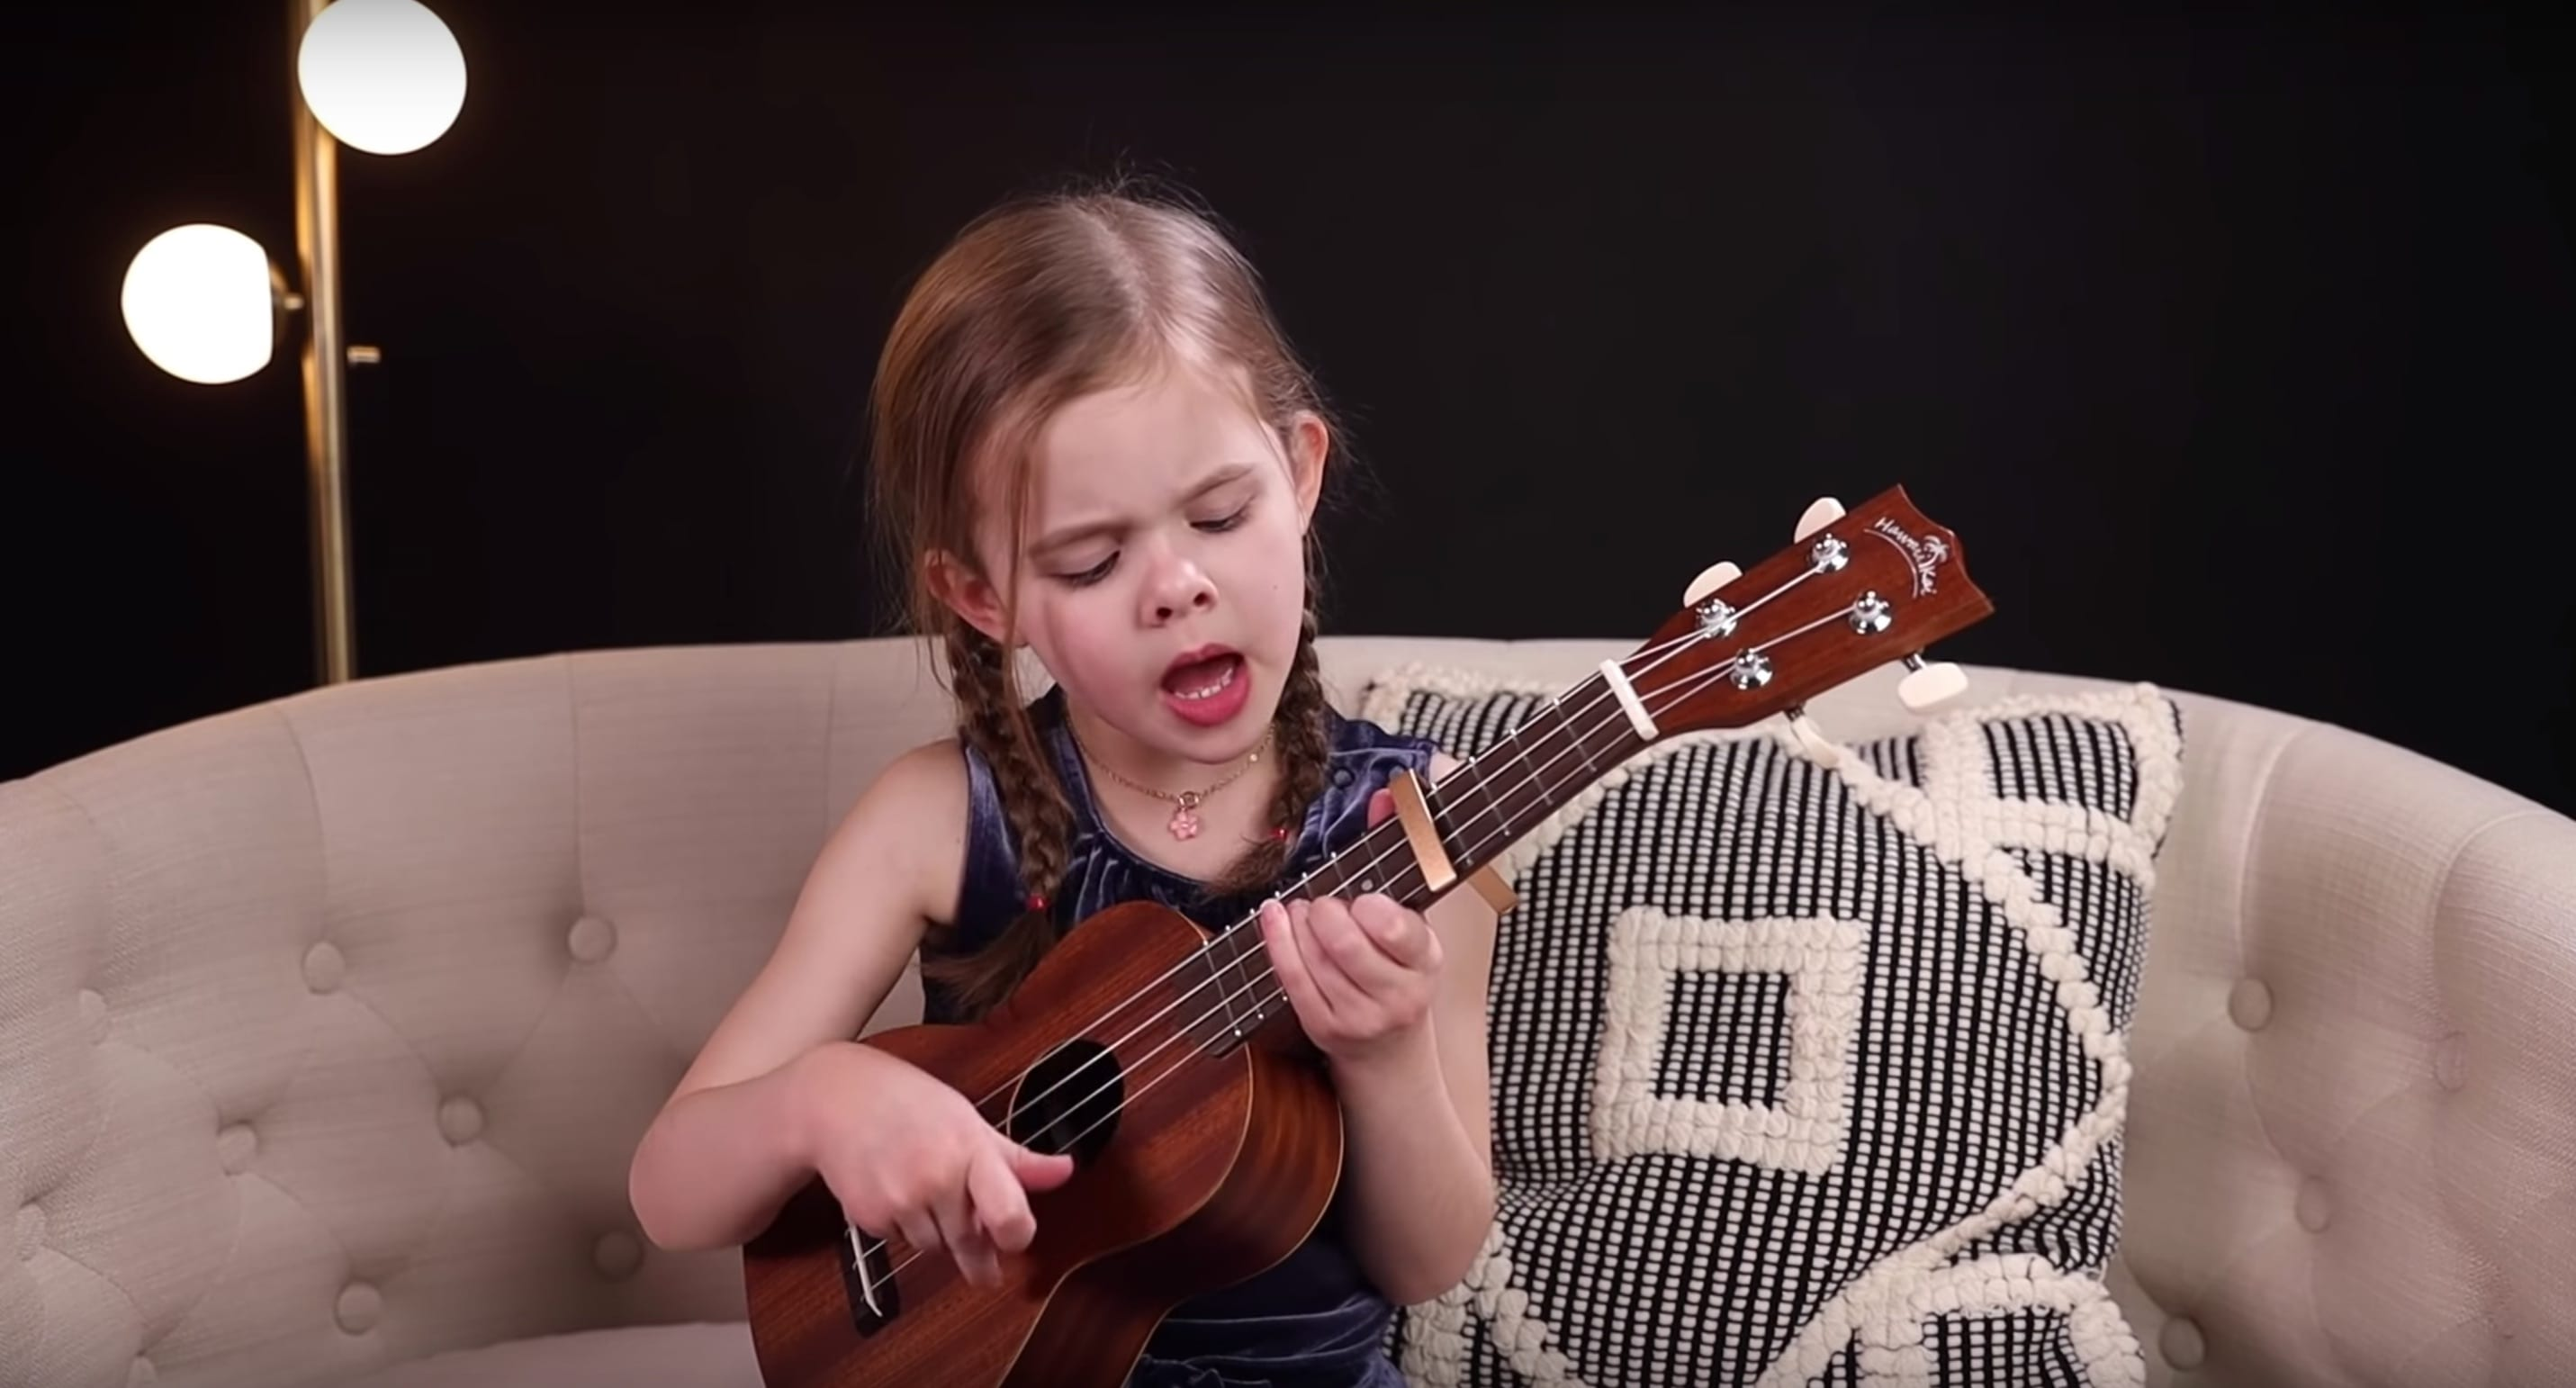 6-Year-Old Claire Crosby Plays Elvis Presley Song On Ukulele